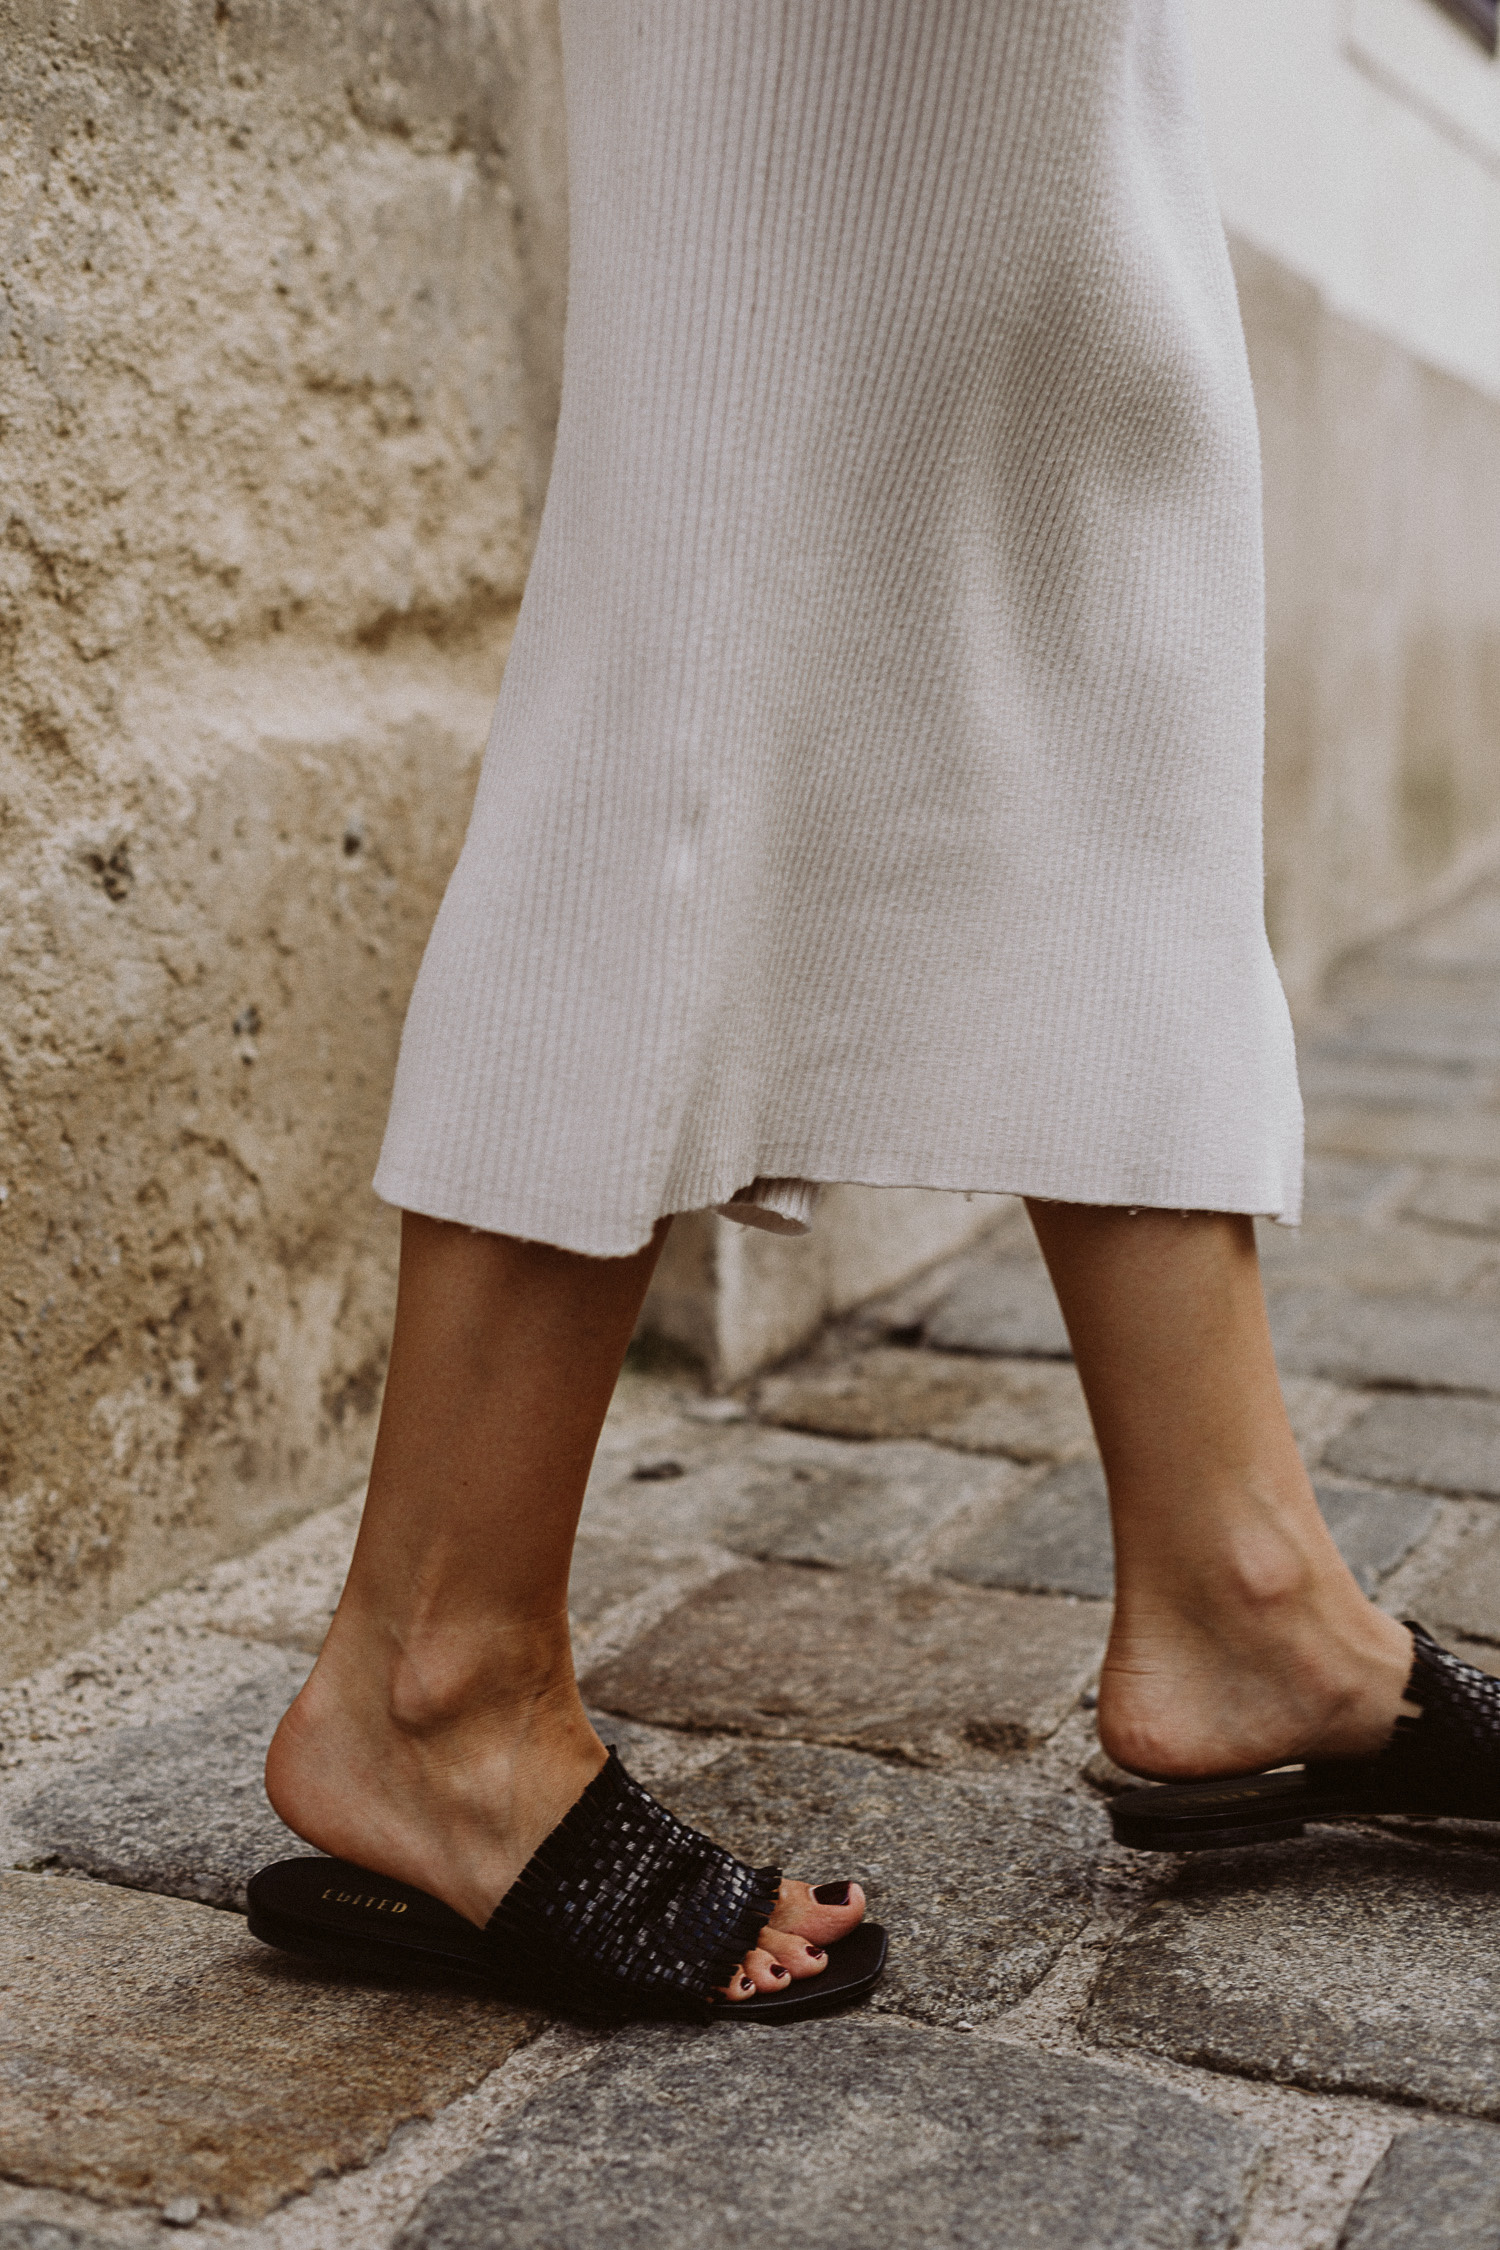 Sommer in der Stadt Outfit | The Daily Dose